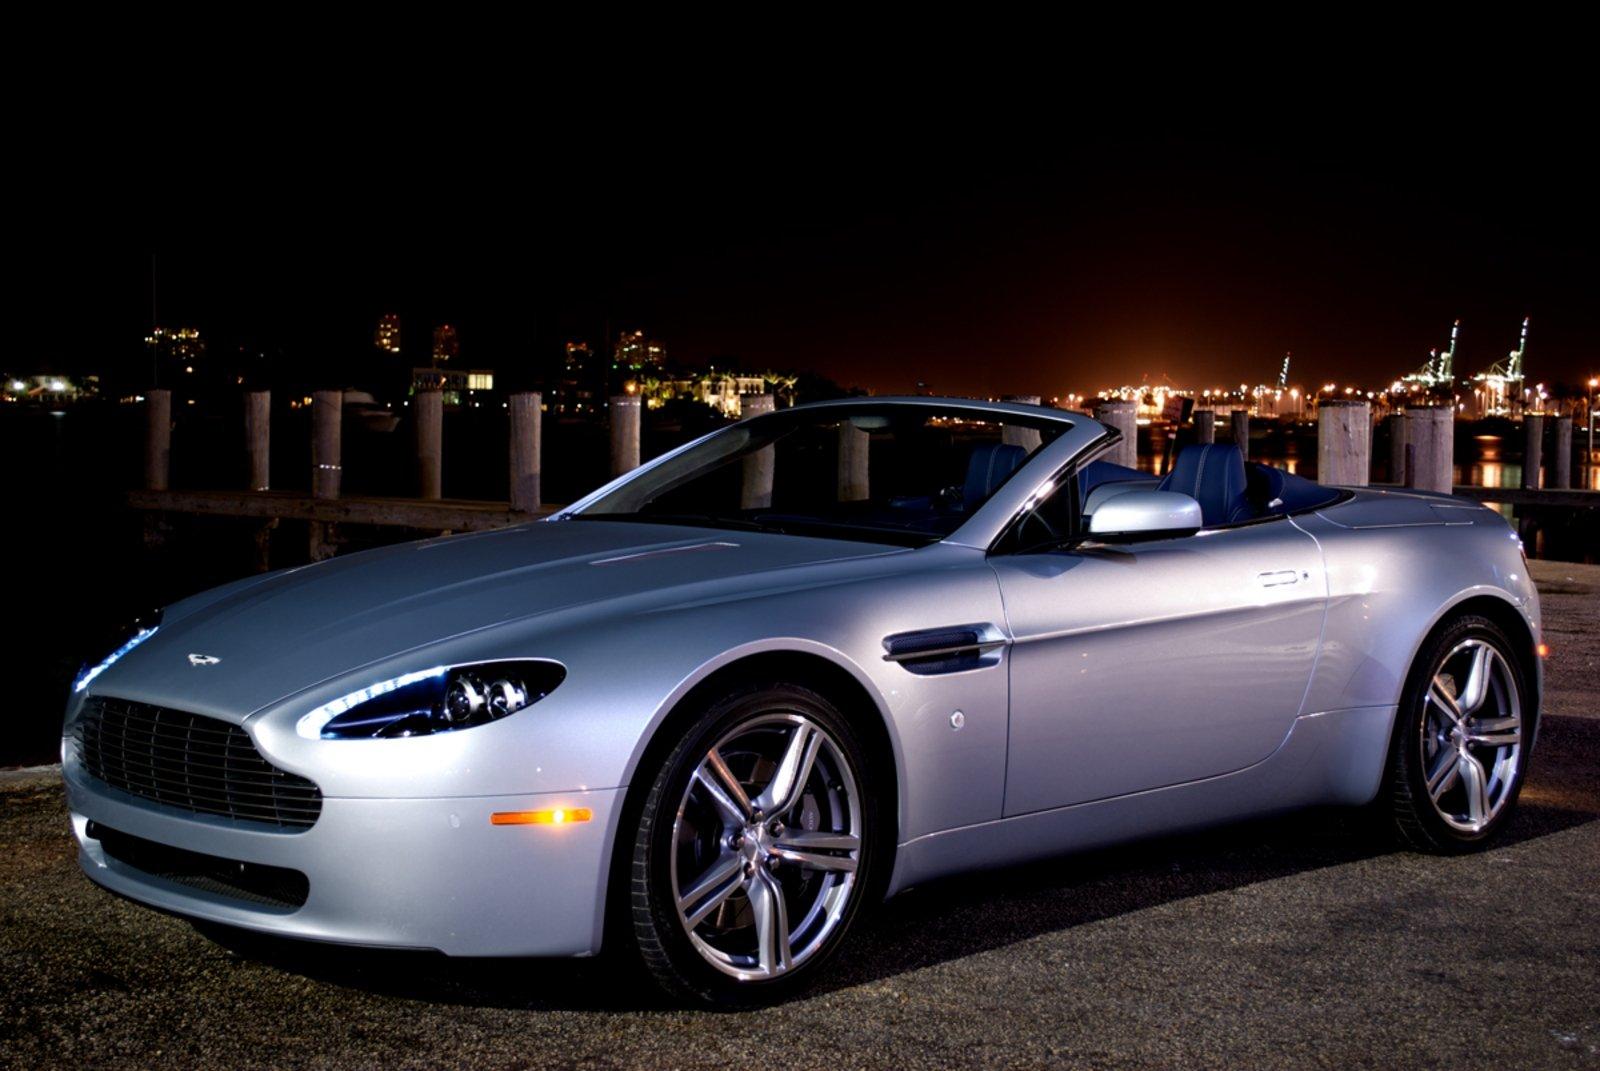 2009 Aston Martin V8 Vantage Roadster Review - Top Speed